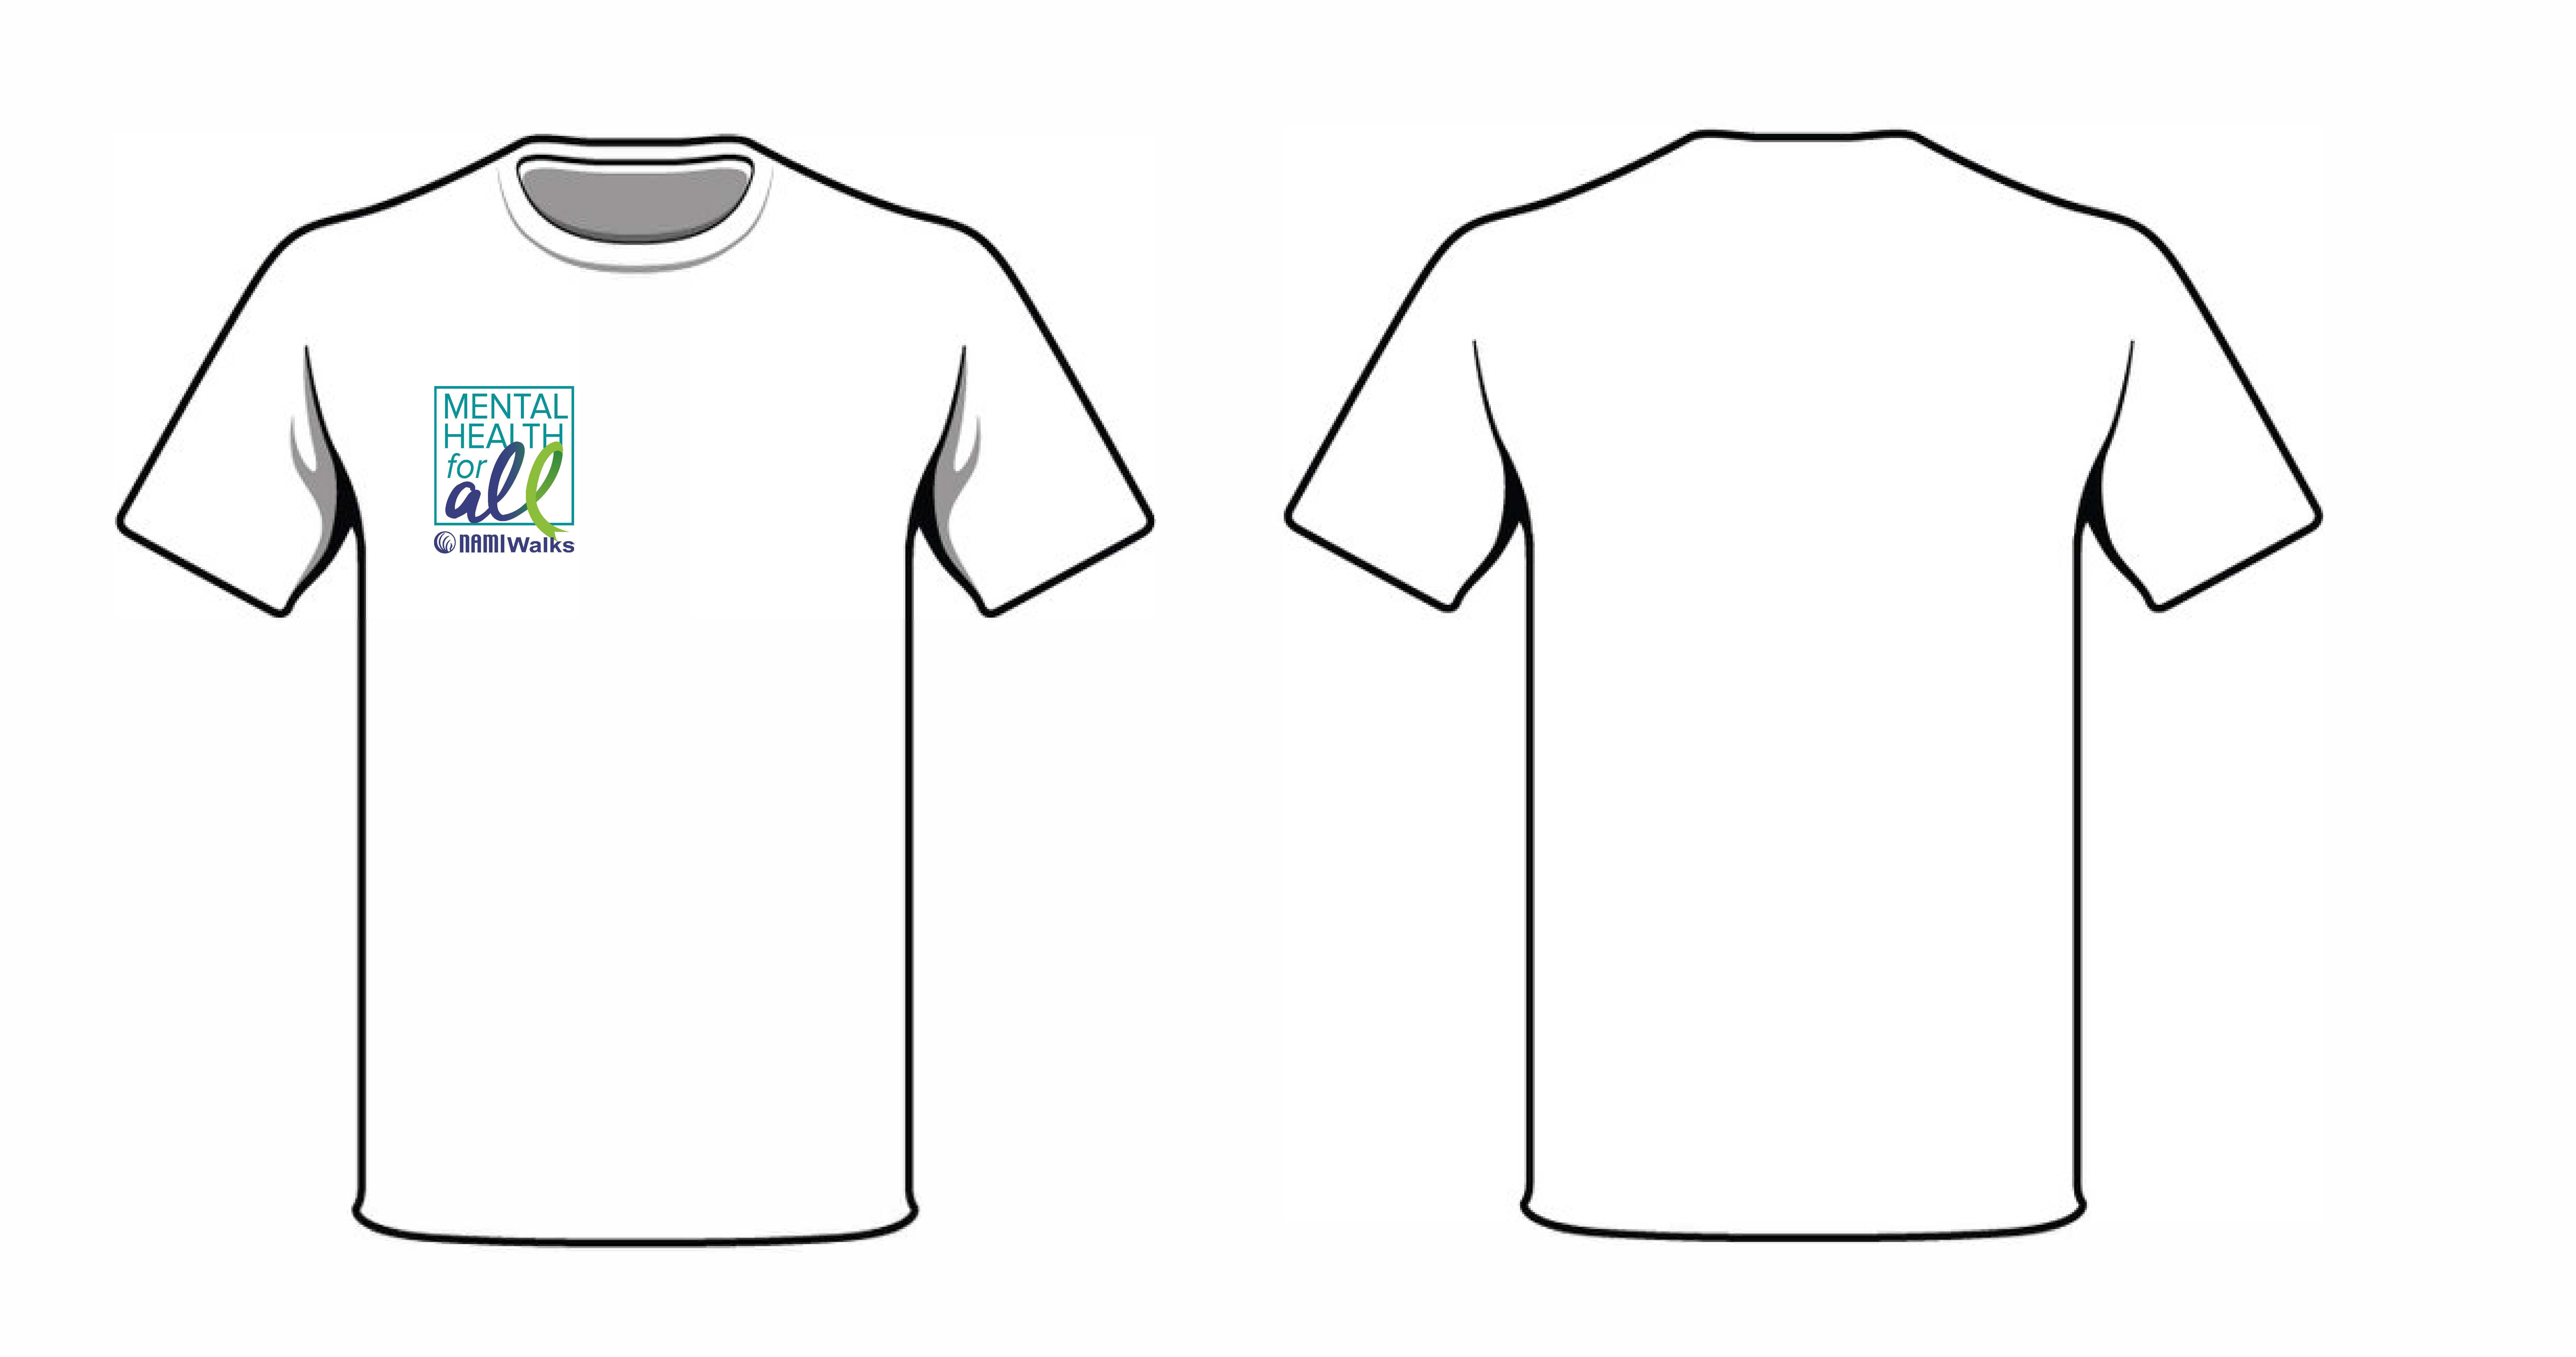 Add your design to the t-shirtbelow. Save the photo to your computer by right clicking and saving the file. This will allow you to print, edit, and enlarge the photo.